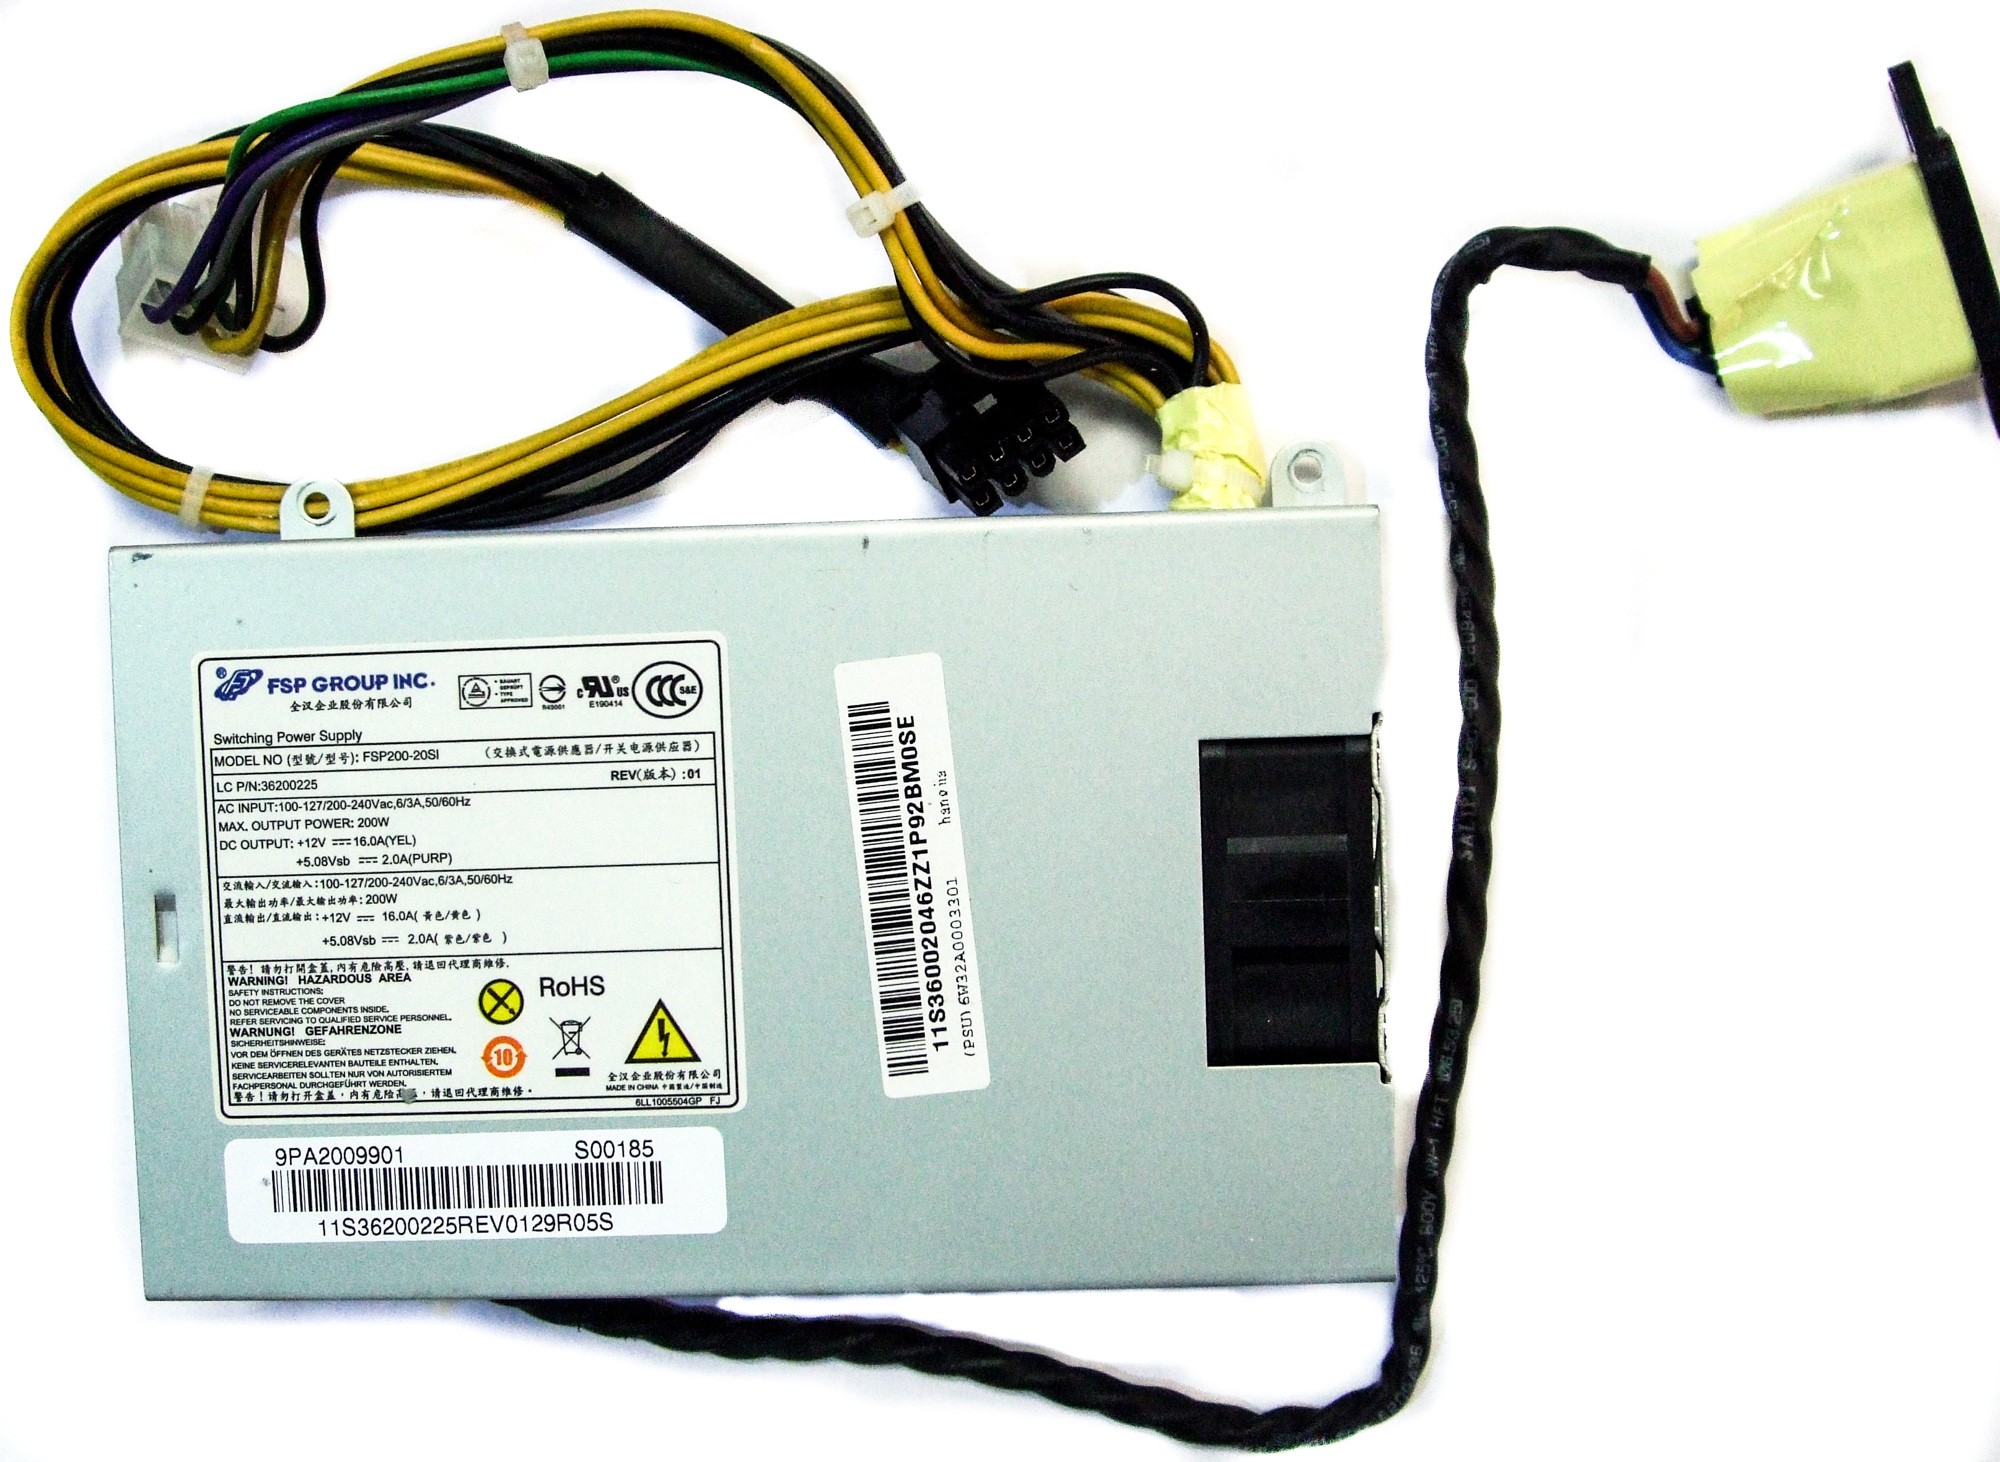 Fsp200 20si Fsp 200w Switching Power Supply Lenovo Ideacentre B540 Supplies 9pa2009901